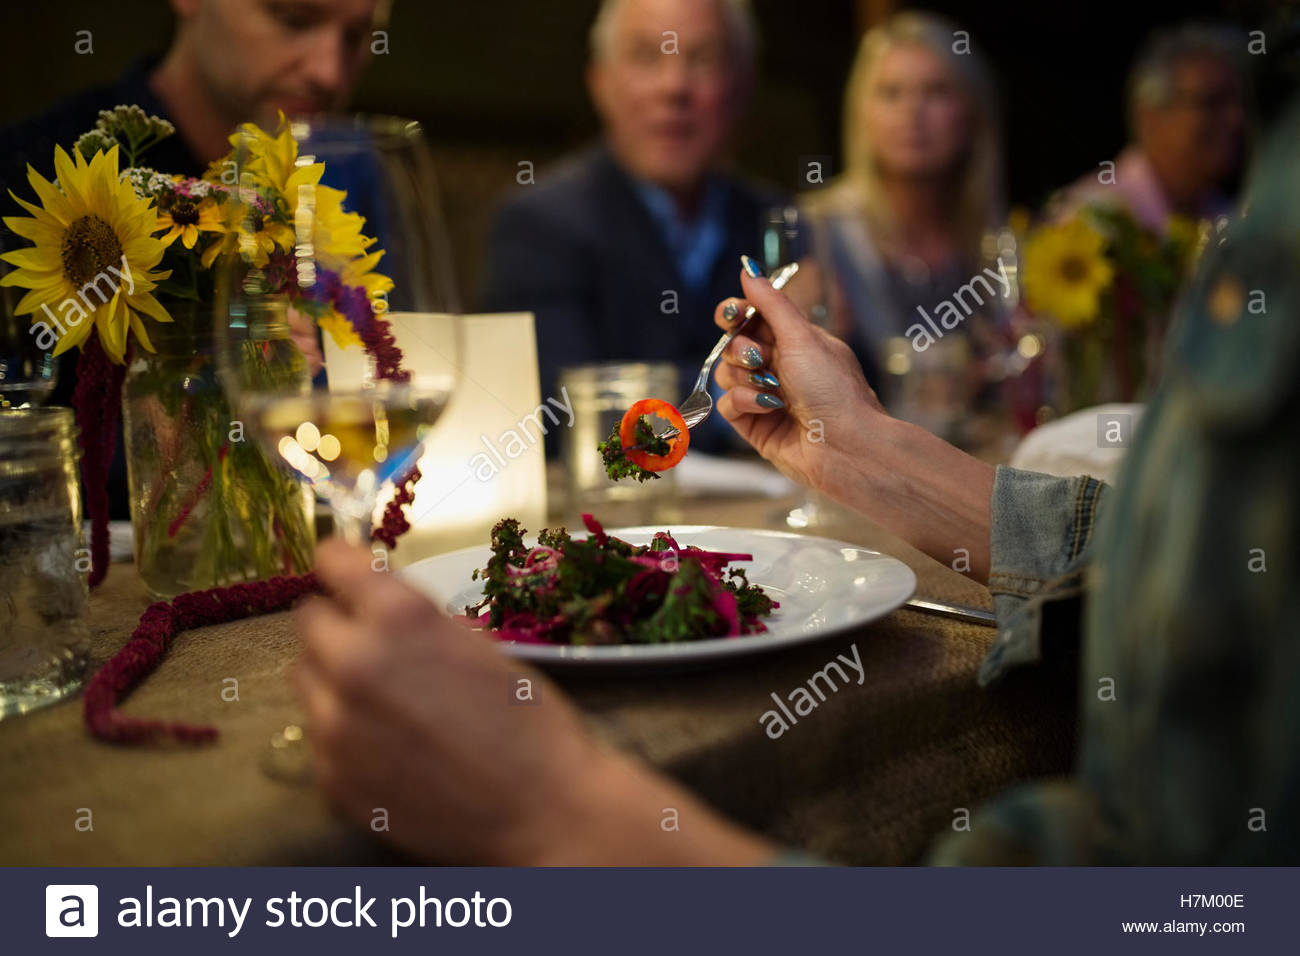 Woman eating at candlelight outdoor dinner party - Stock Image